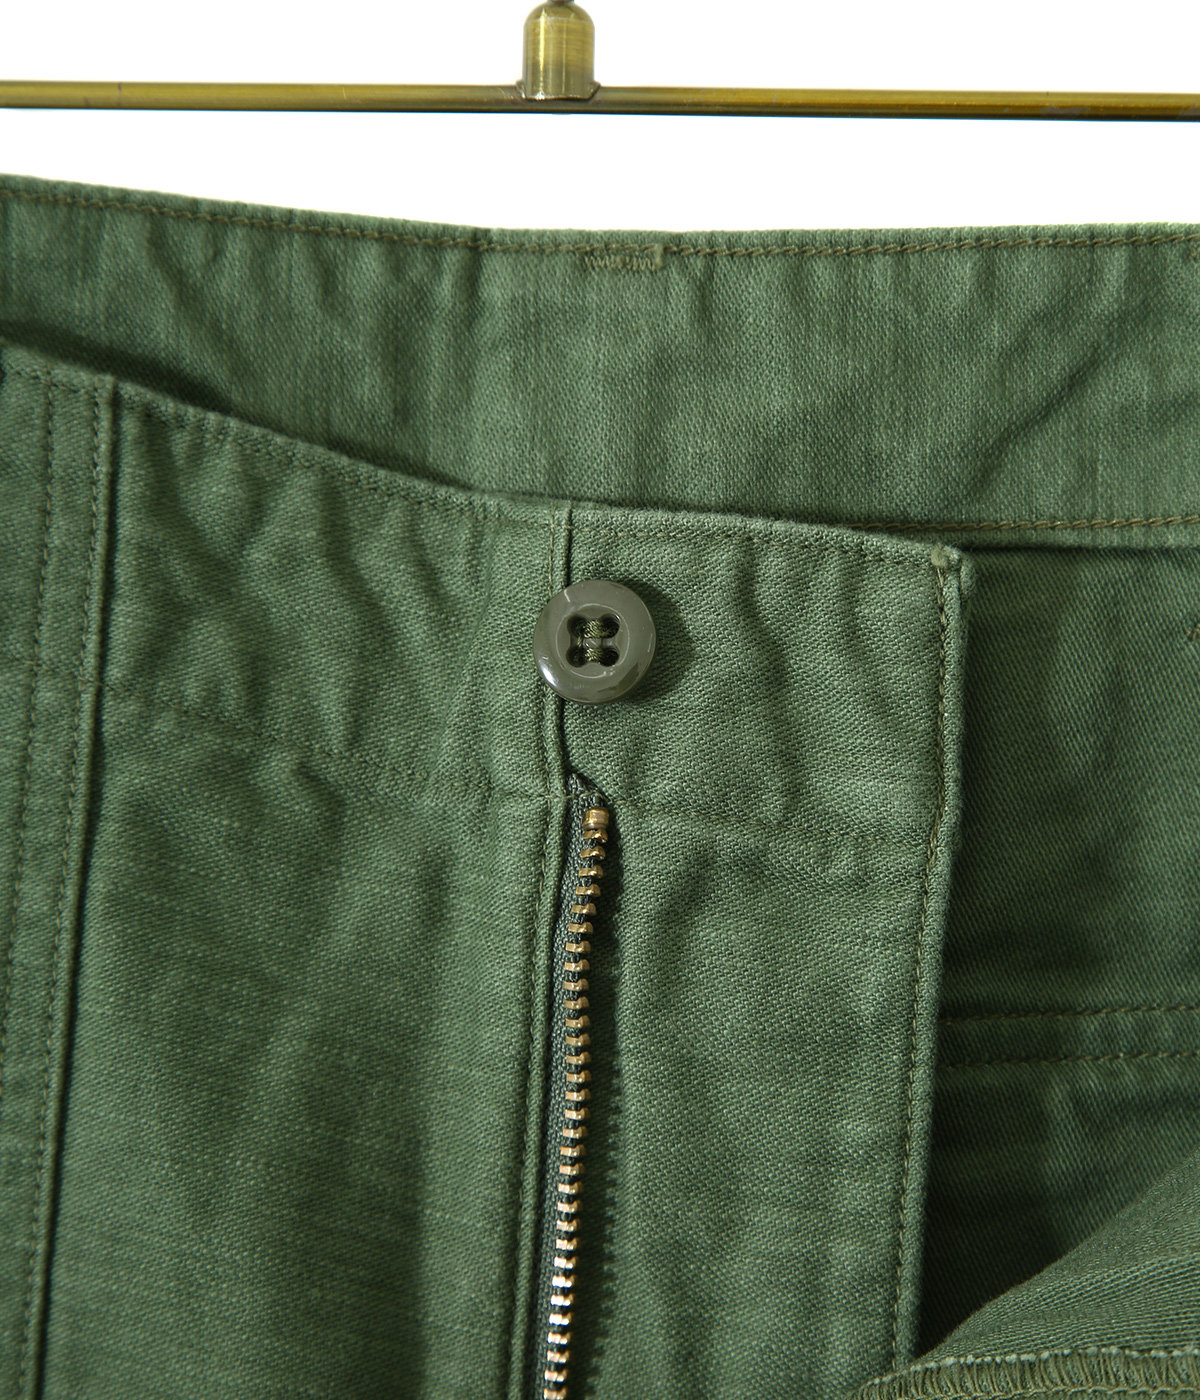 US ARMY FATIGUE SHORTS